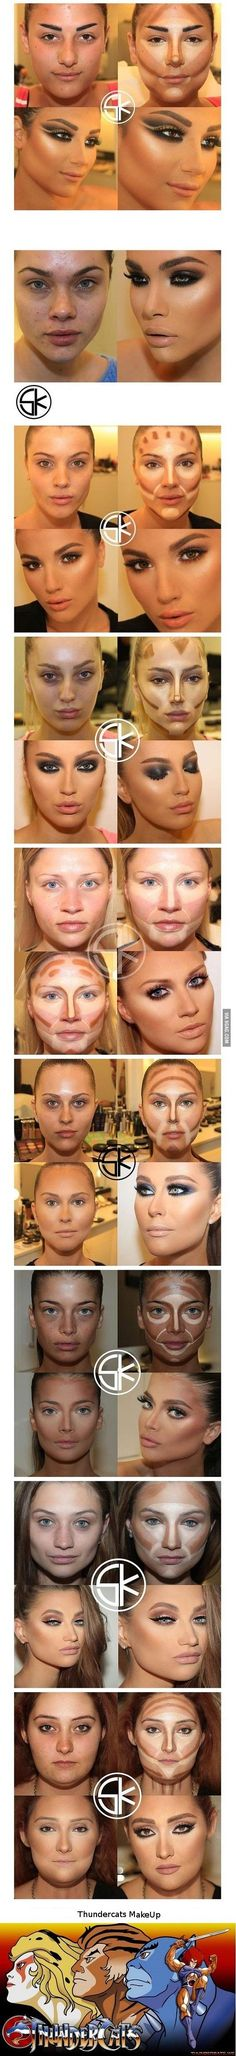 Unreal contouring! Wow! The power of make-up